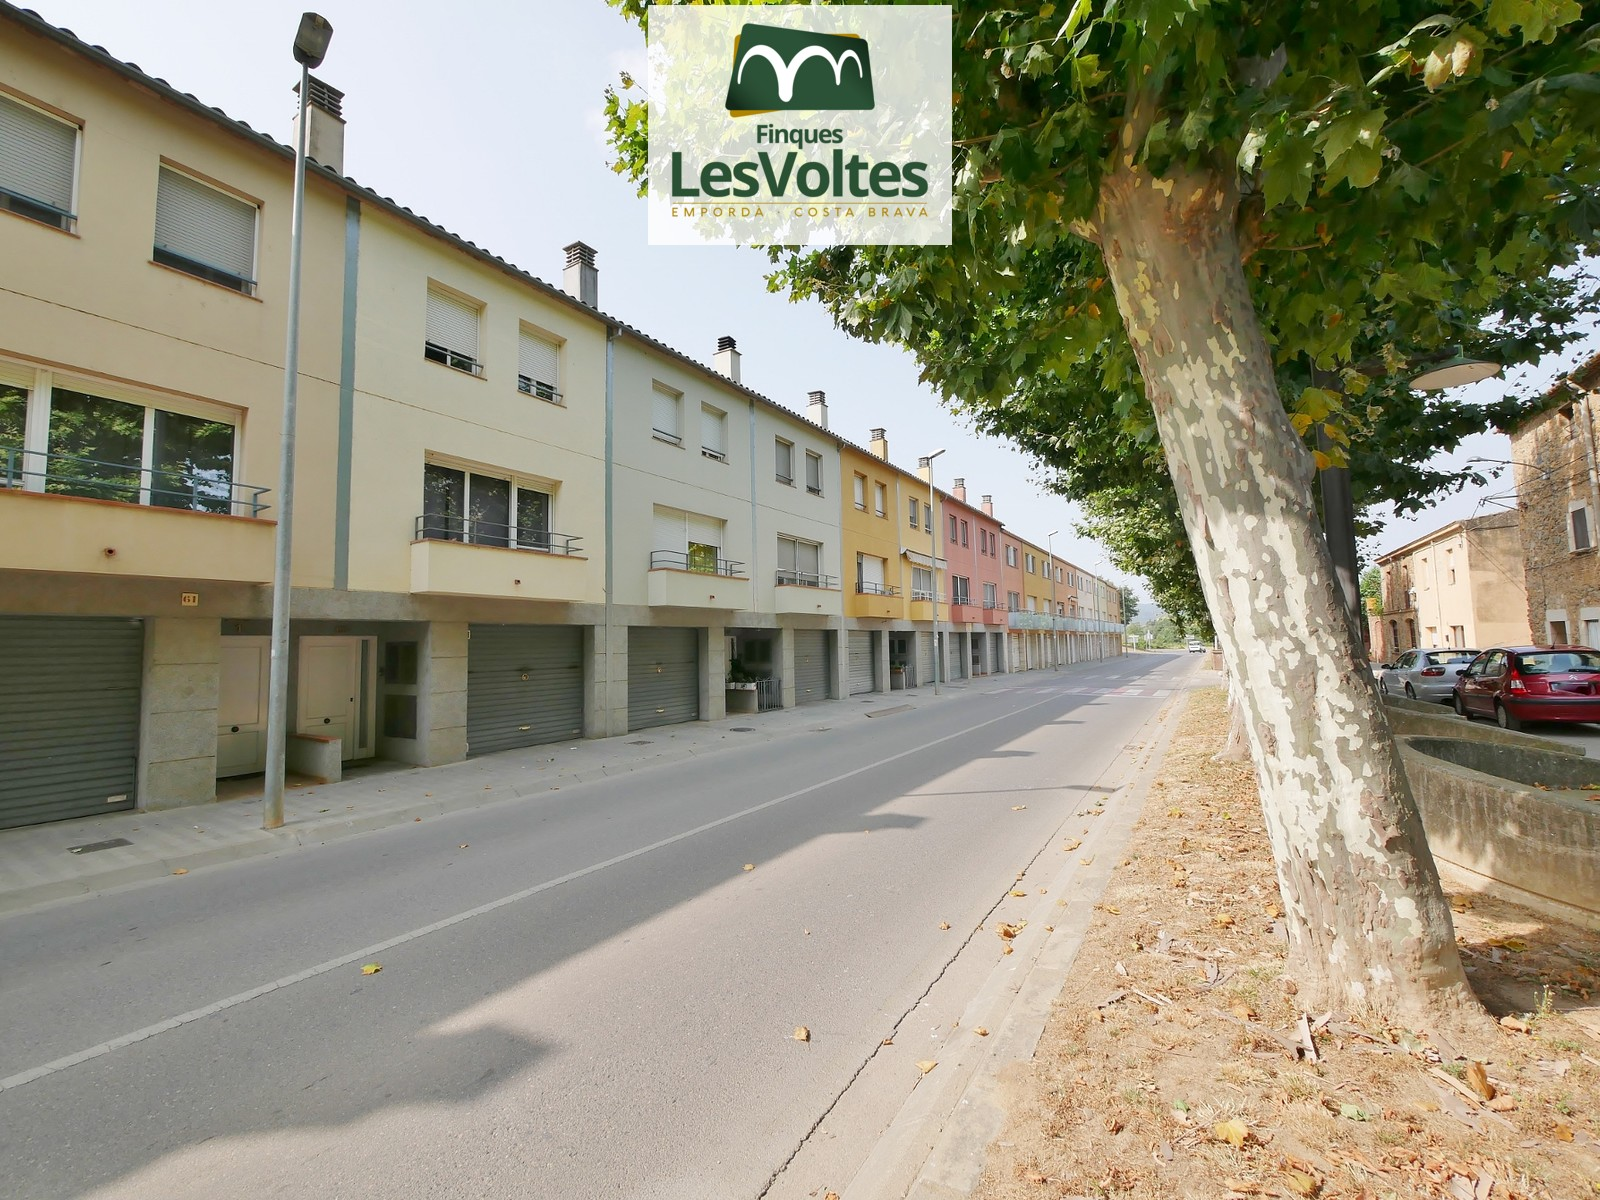 TOWNHOUSE OF 170 M2 WITH GARAGE AND YARD OF 42 M2 FOR SALE IN LA BISBAL D'EMPORDÀ.